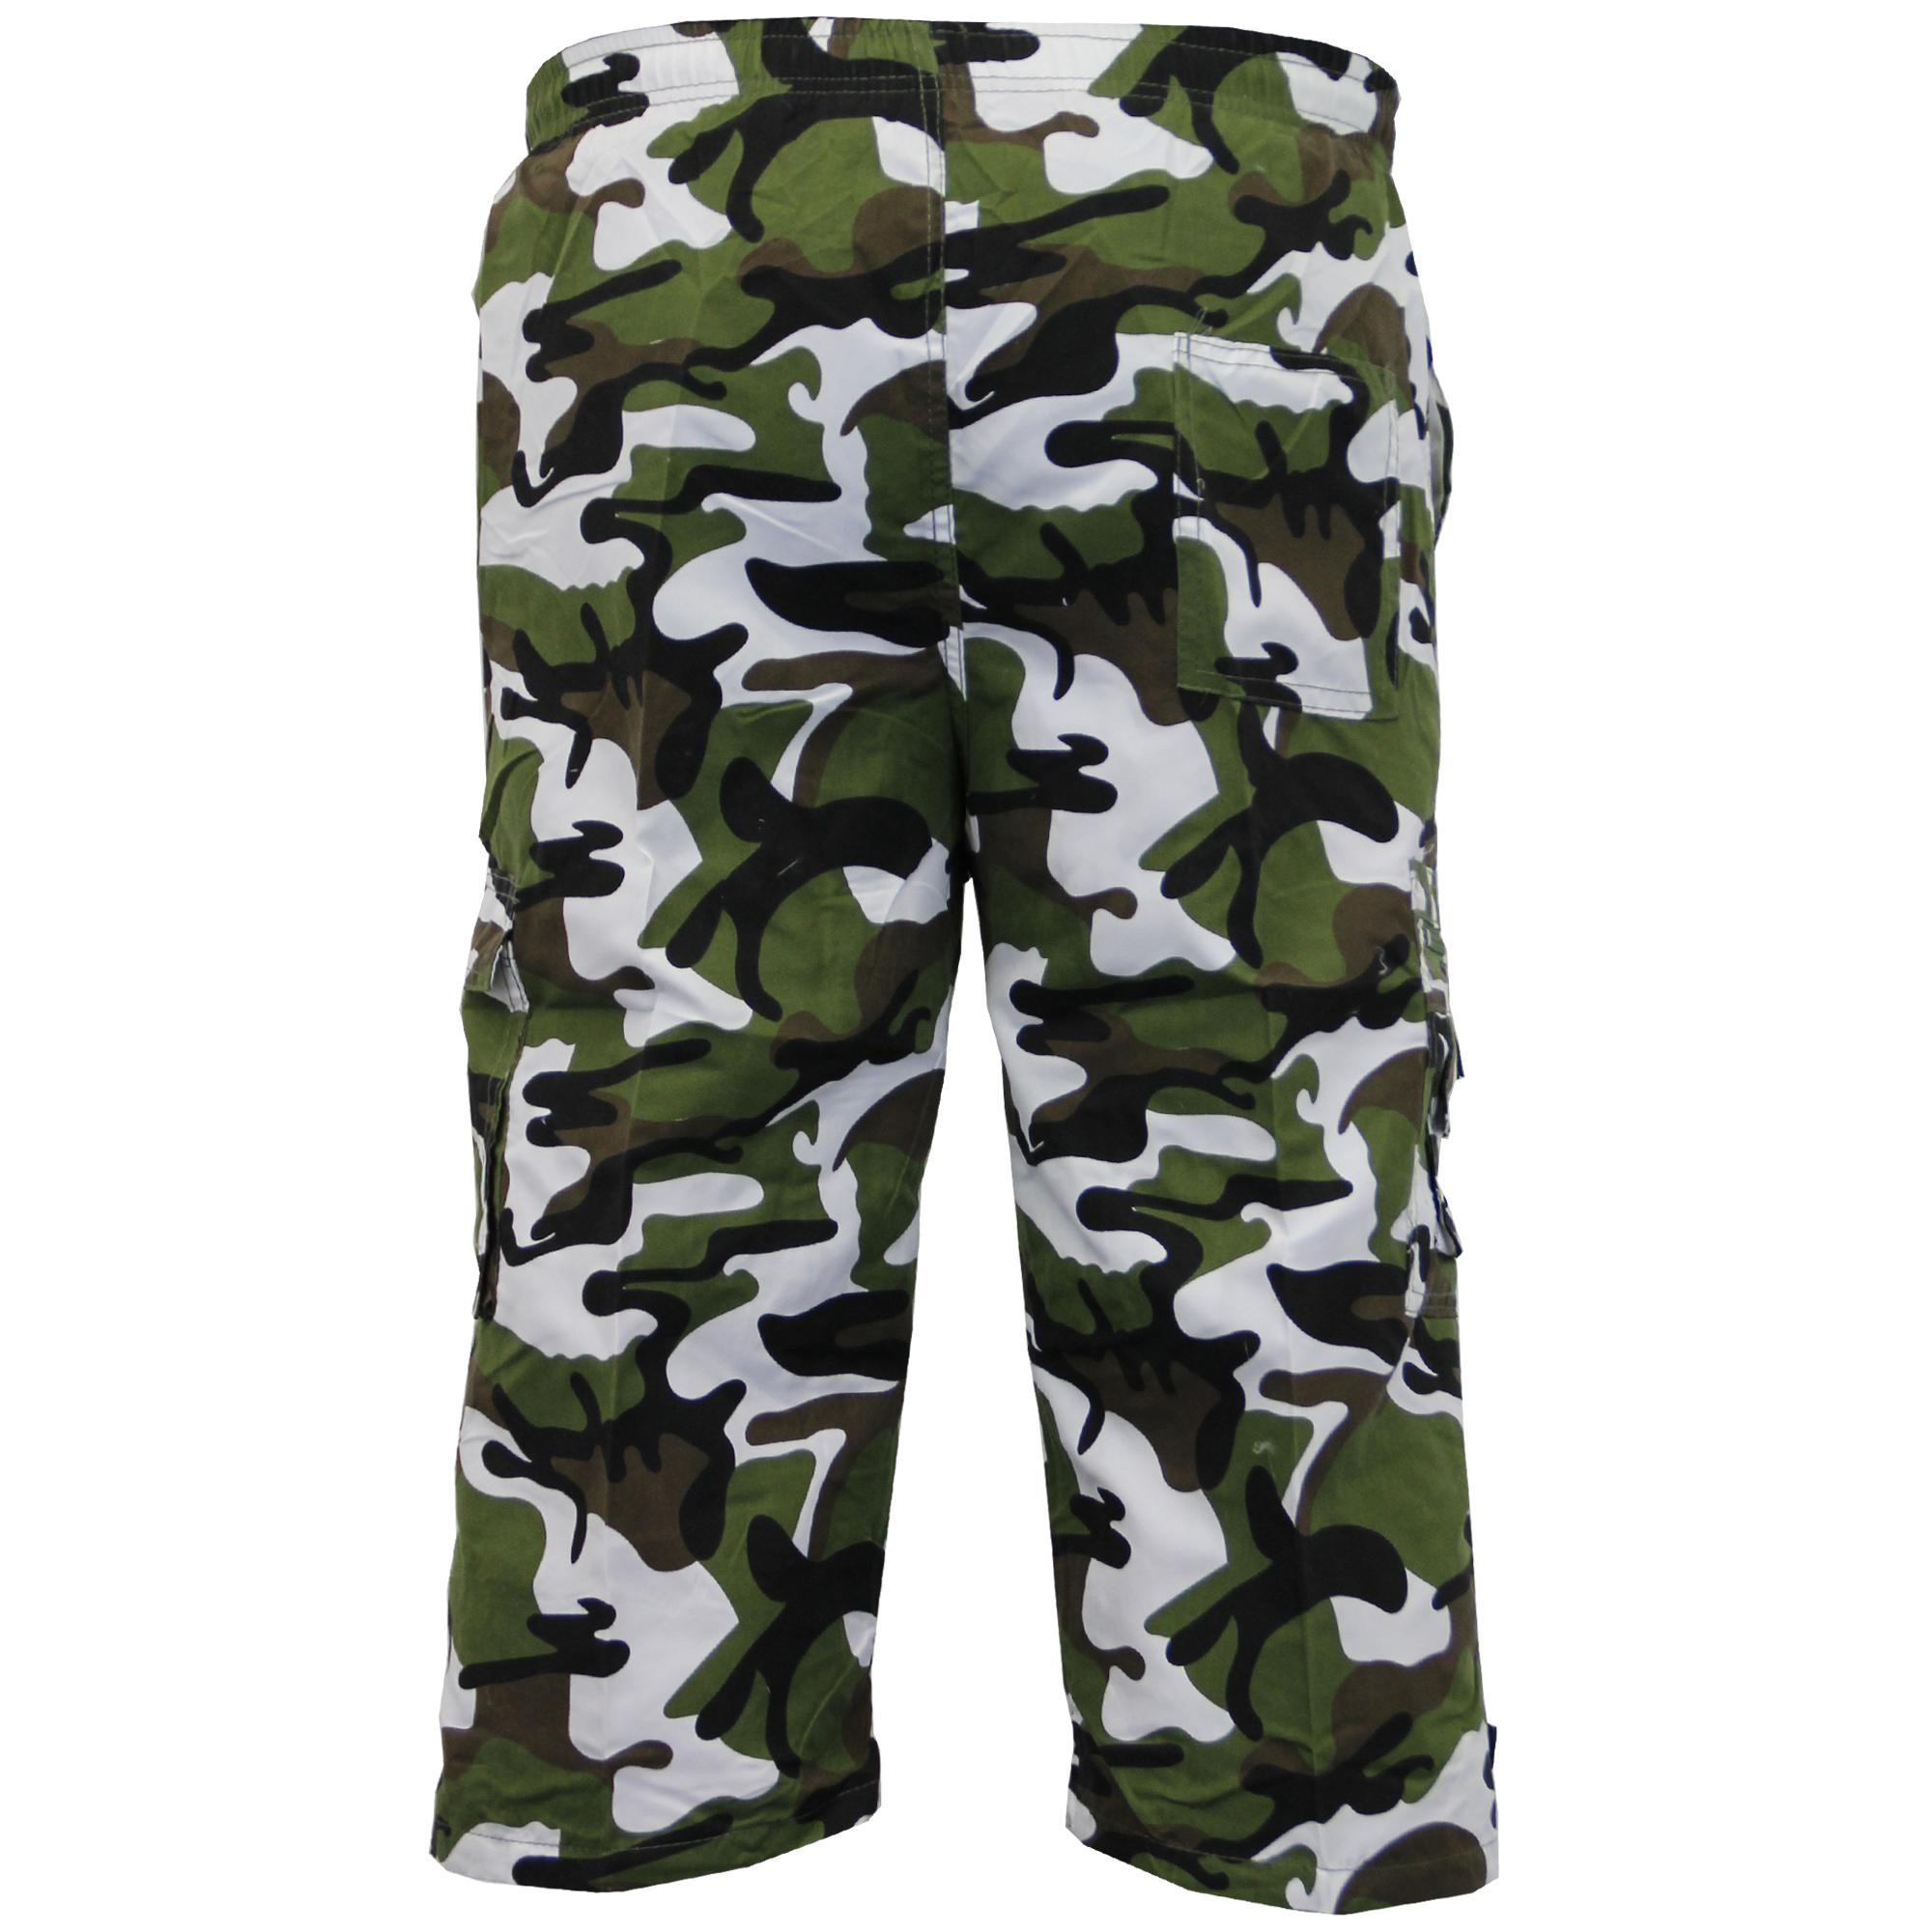 Mens-Camouflage-Combat-Cargo-Shorts-3-4-Length-Army-Military-Sports-Summer-New thumbnail 3